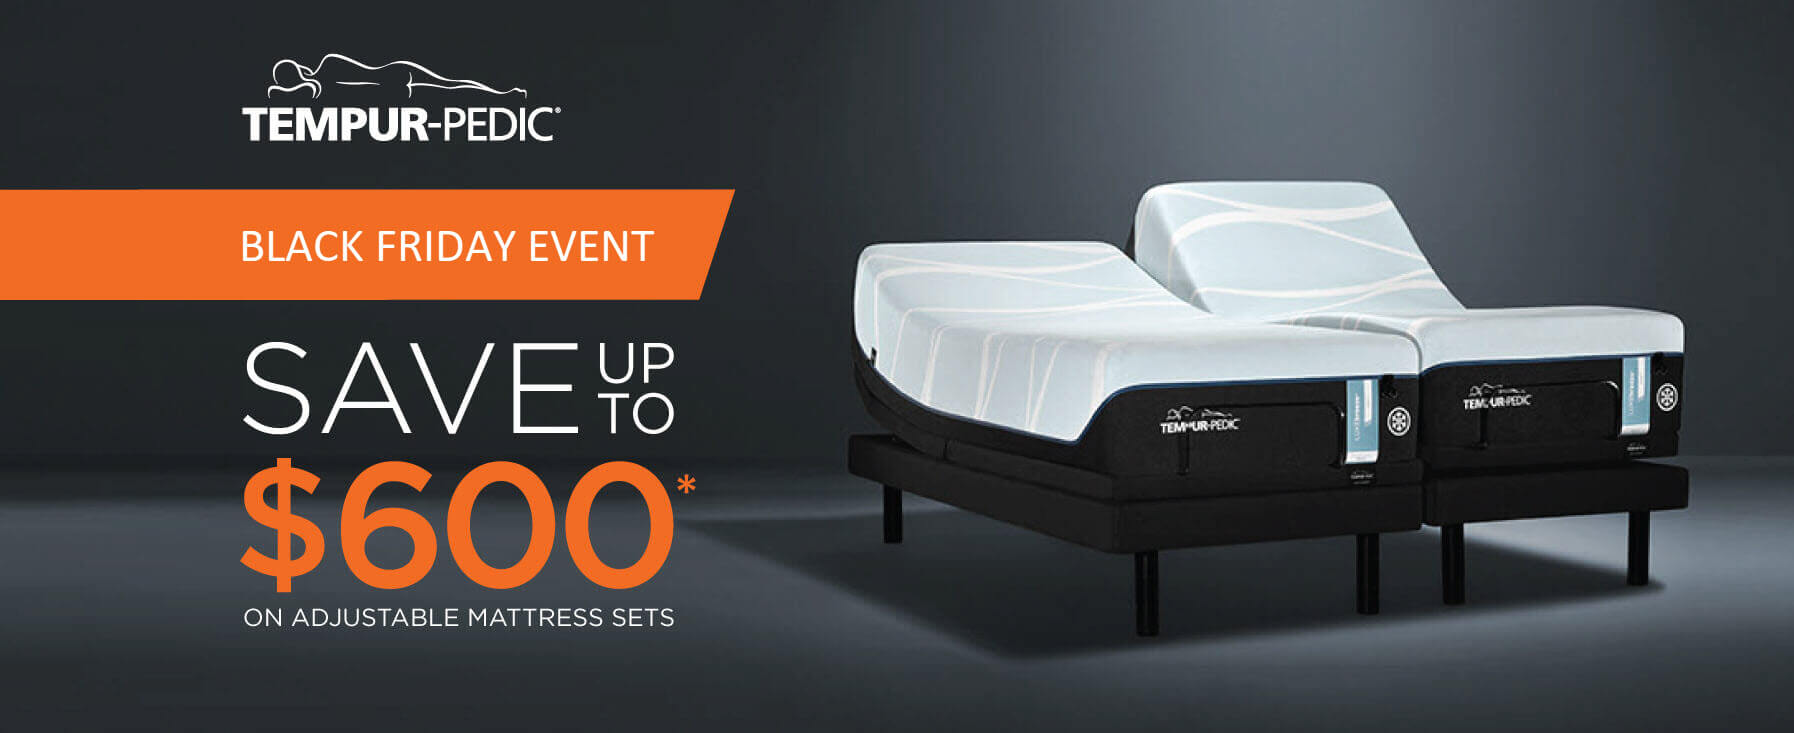 Tempur-Pedic Fall Savings Event